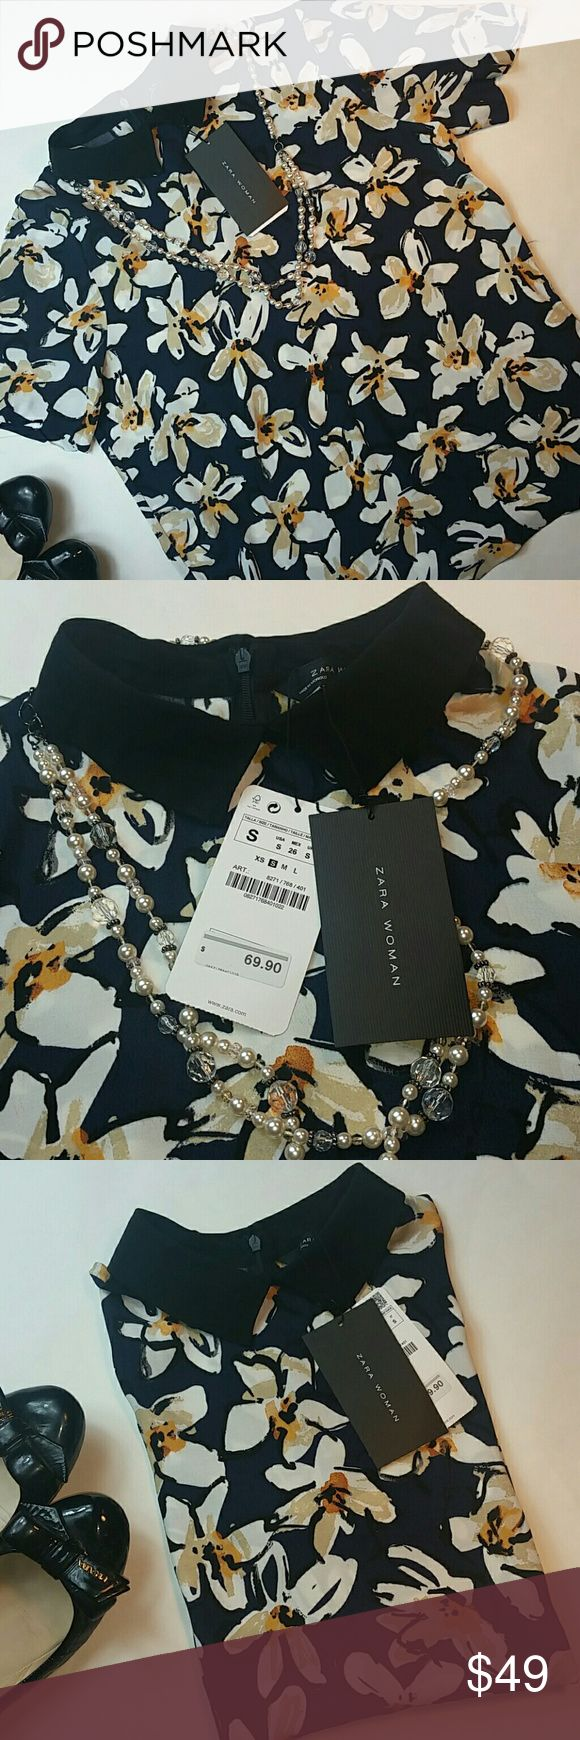 NWT ZARA WOMAN Floral top Navy blue top with beige tan and mustard flowers. Back zipper and with short sleeves. Versatile top! Zara Tops